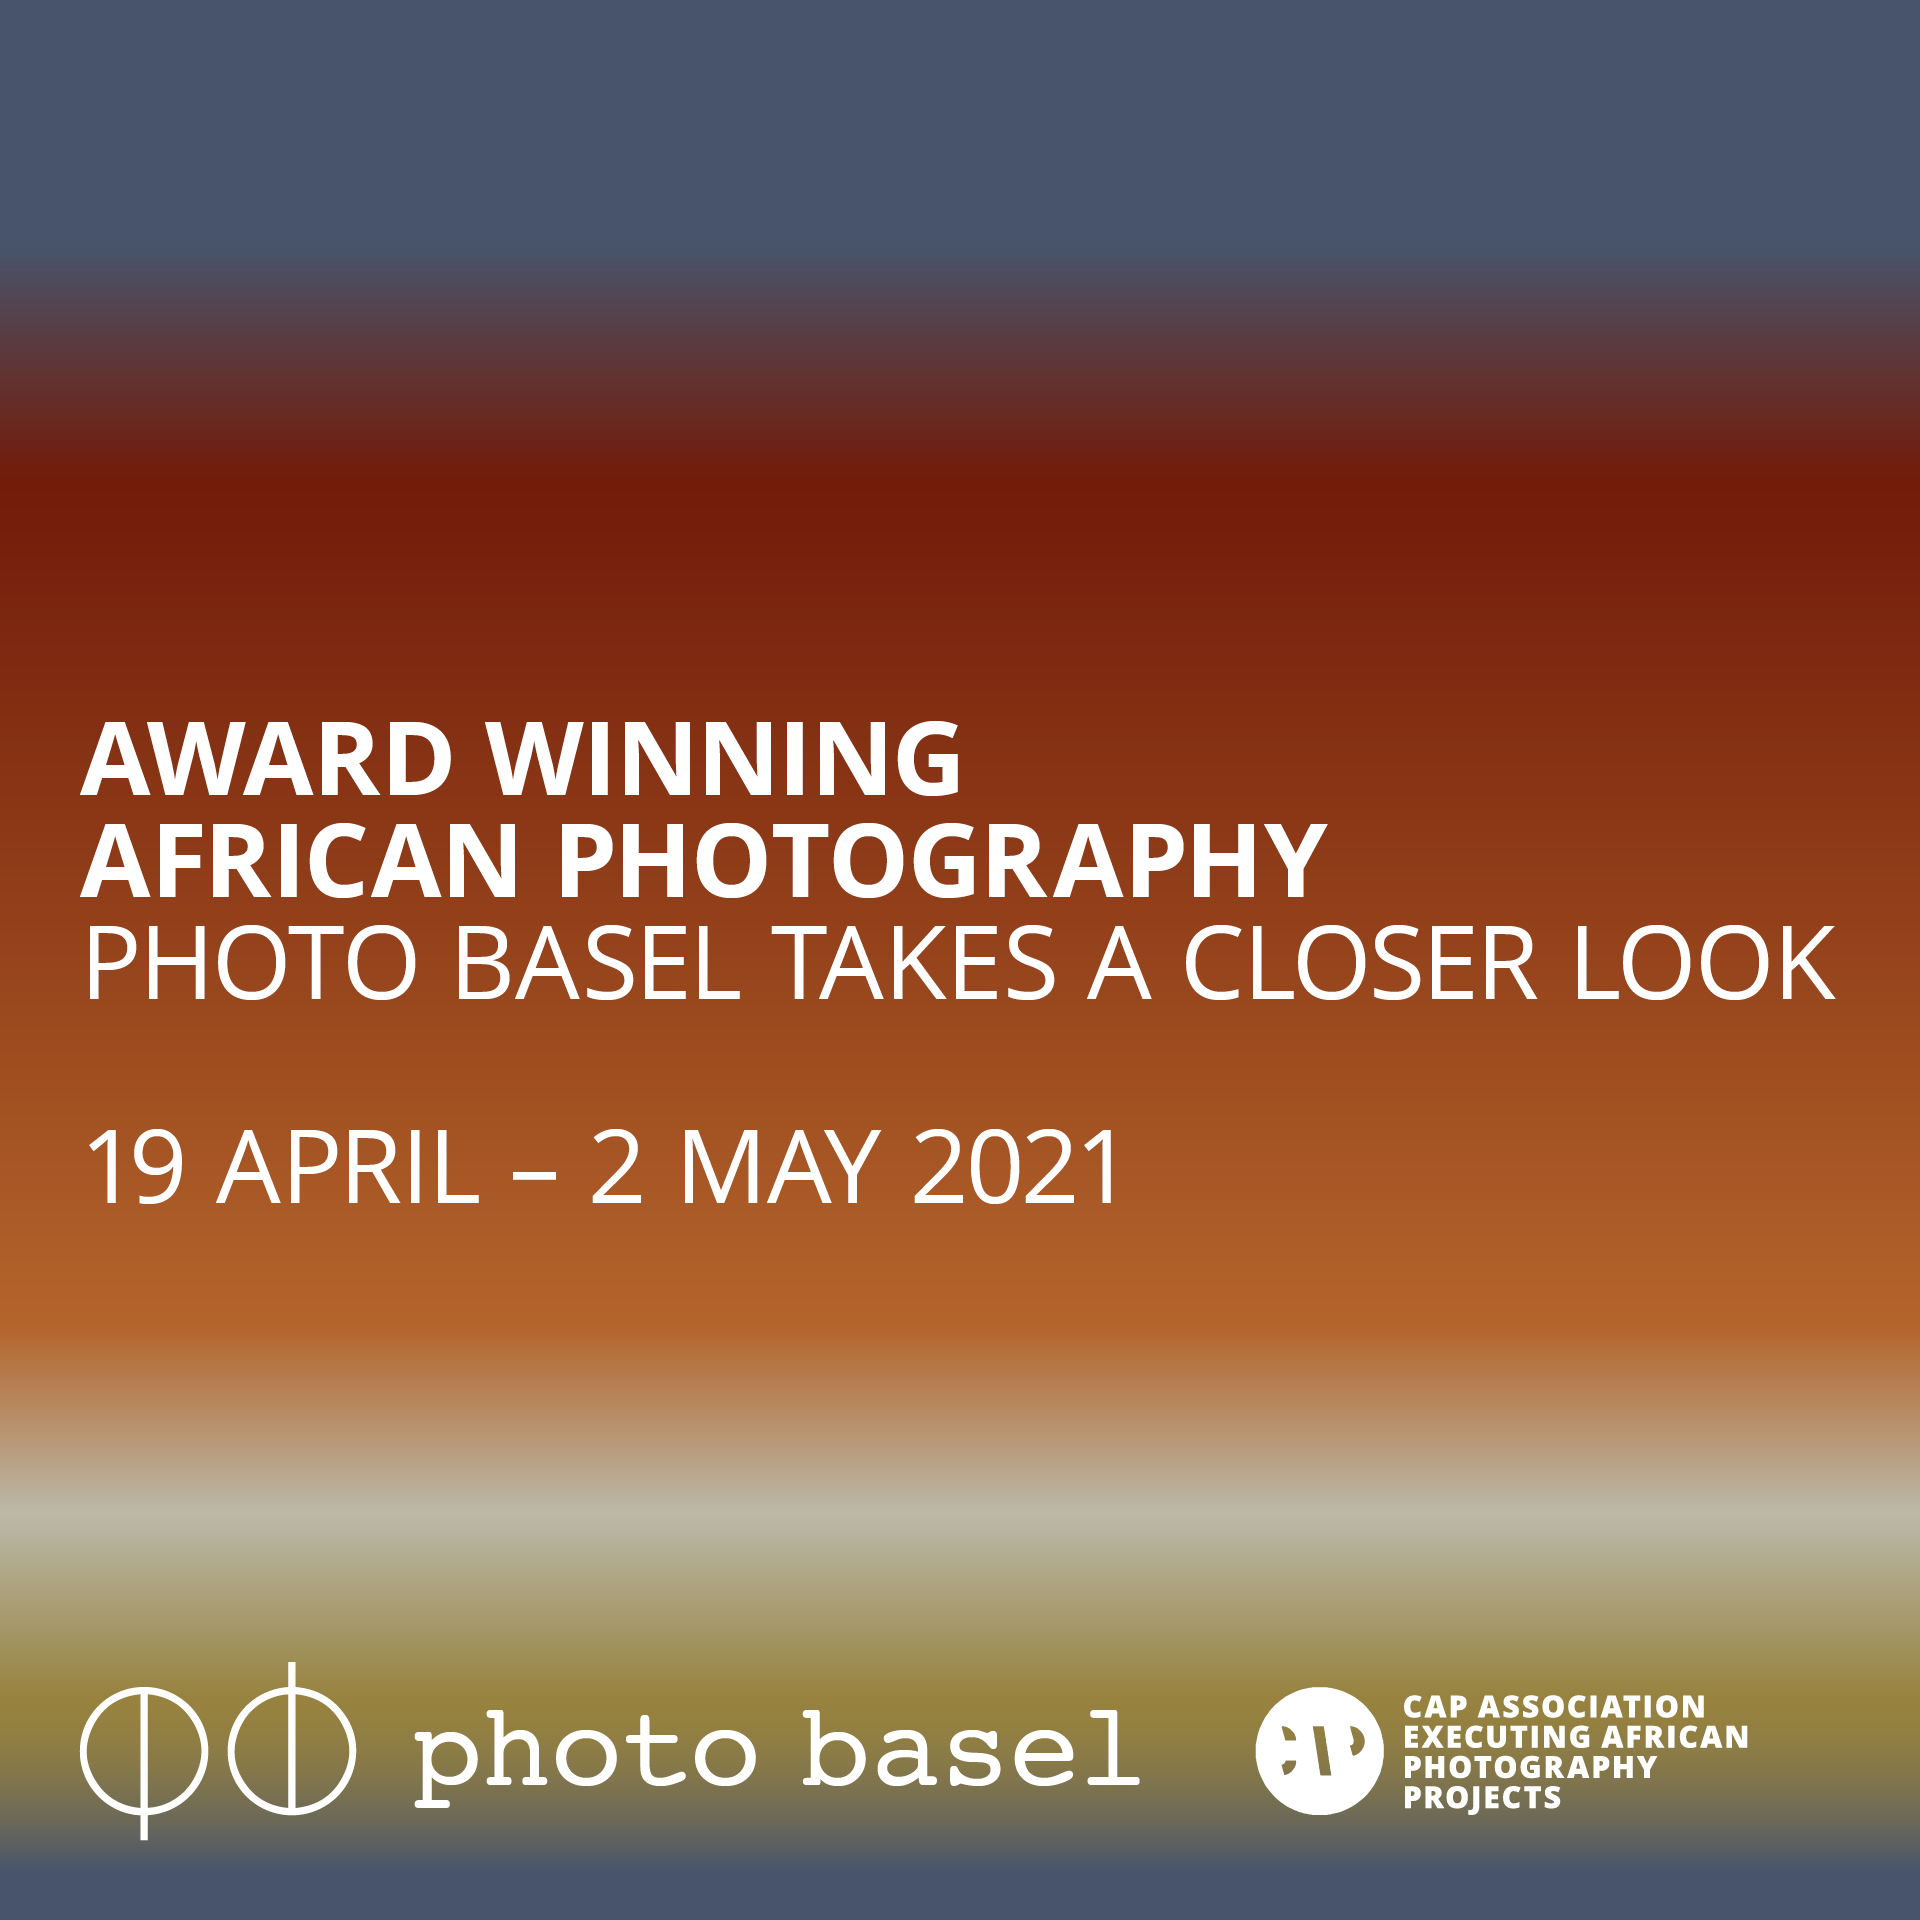 AWARD WINNING  AFRICAN PHOTOGRAPHY,art and about africa, contemporary african art, artmap, african art map, art map africa